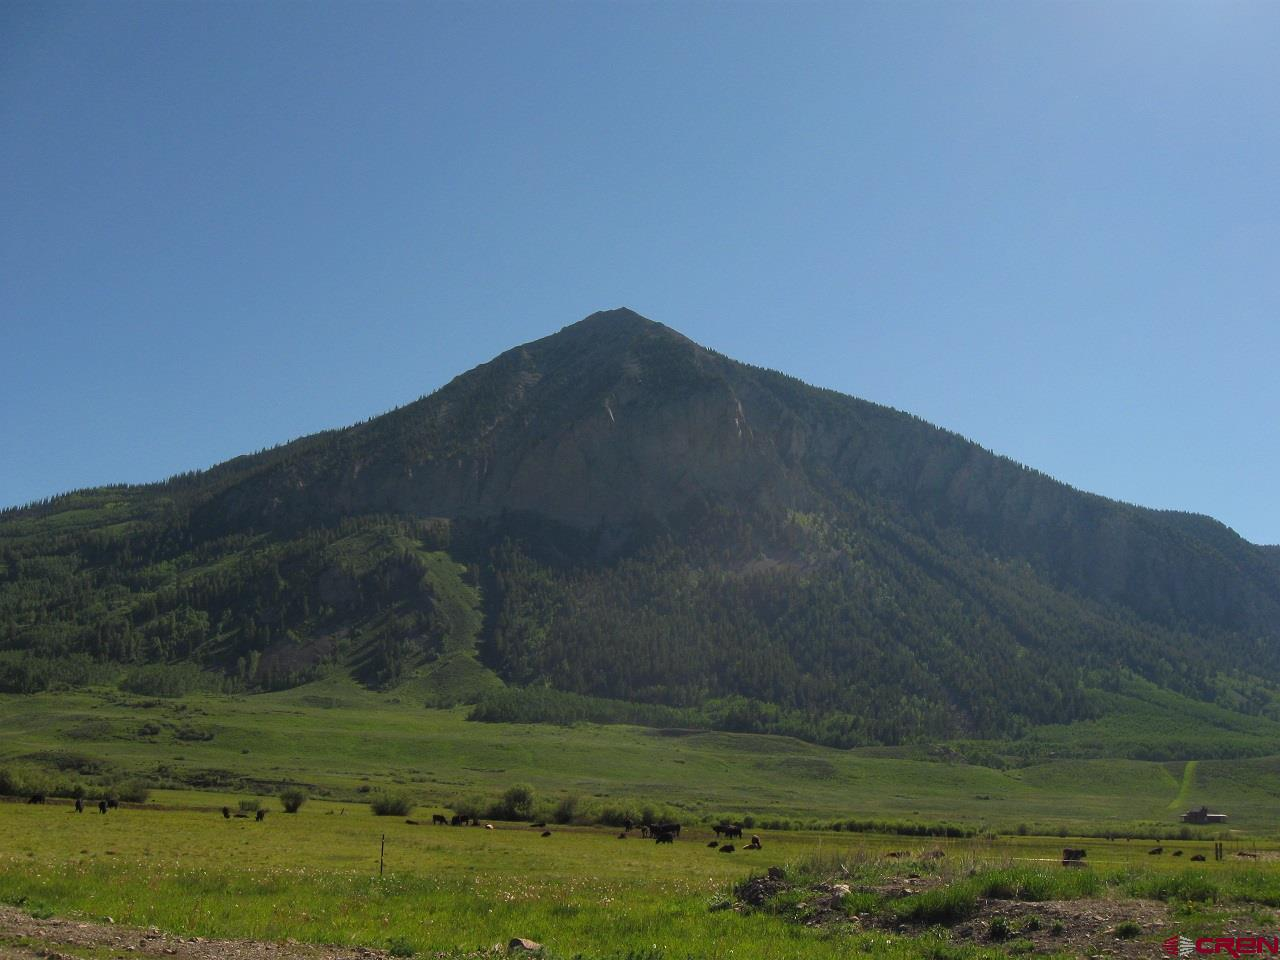 MLS# 757733 - 12 - 341 Mccormick Ranch Road, Crested Butte, CO 81224